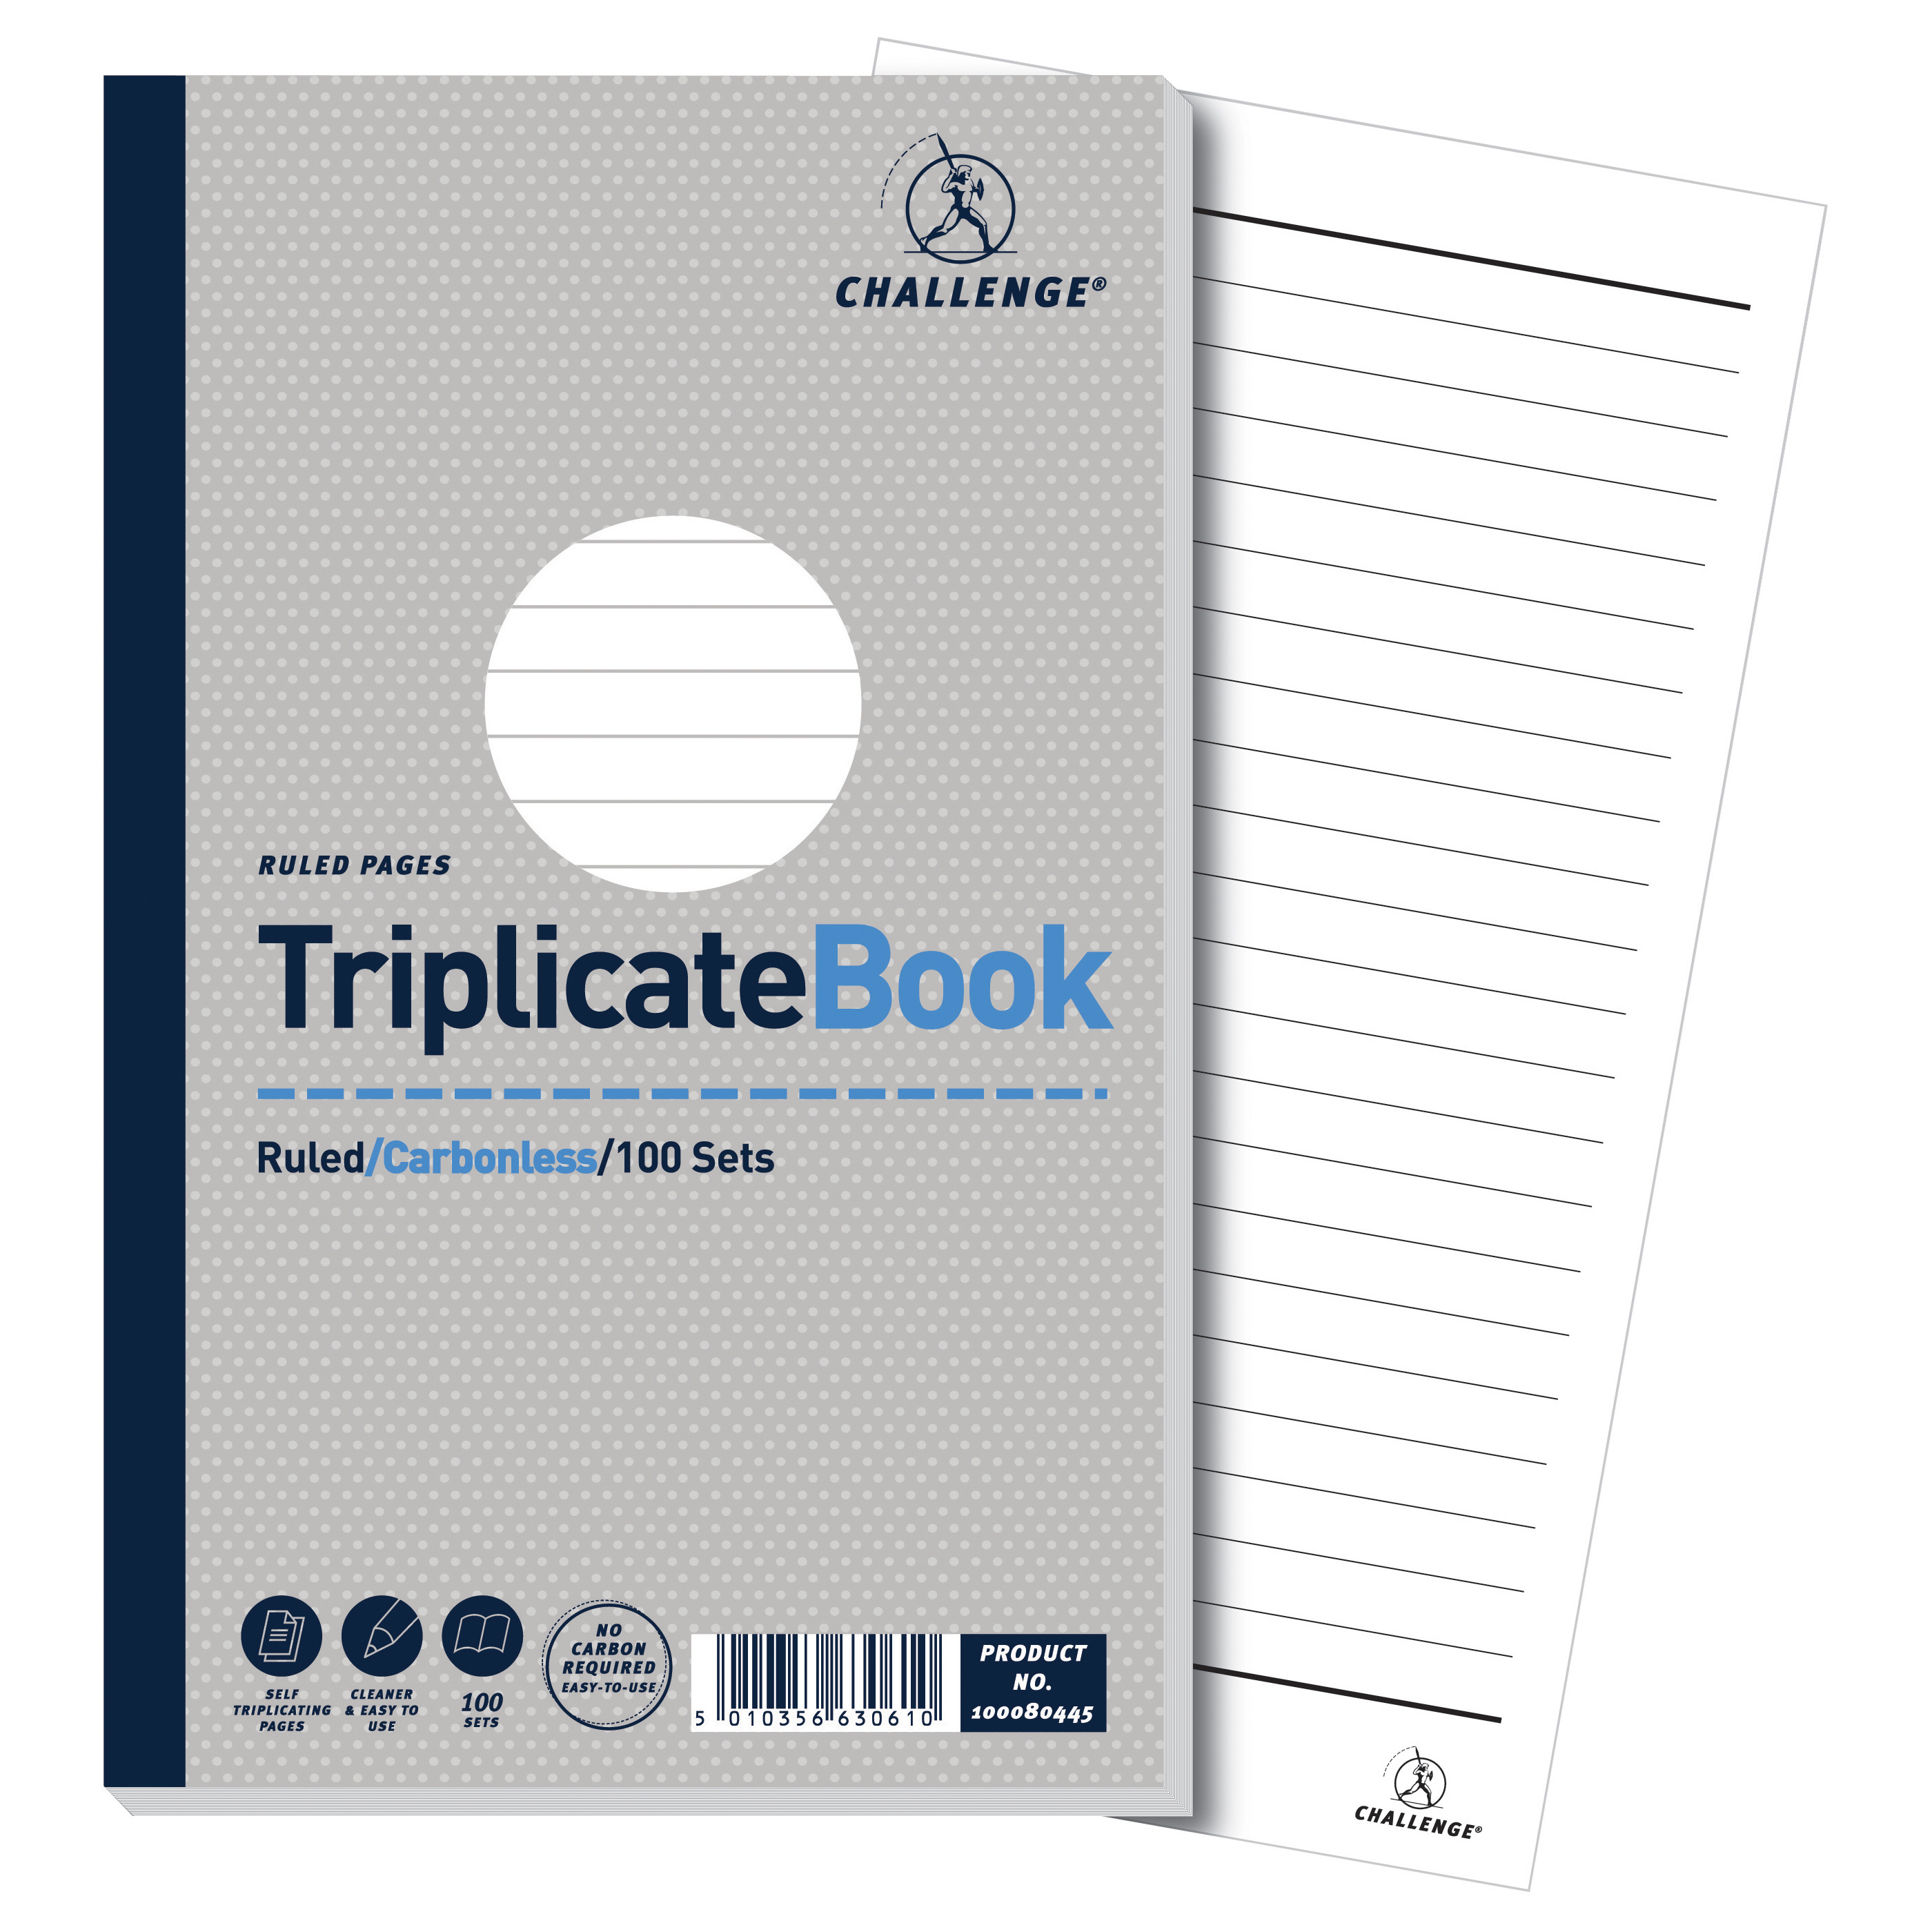 Triplicate Challenge Triplicate Book Carbonless Ruled 100 Sets 210x130mm Ref 100080445 Pack 5